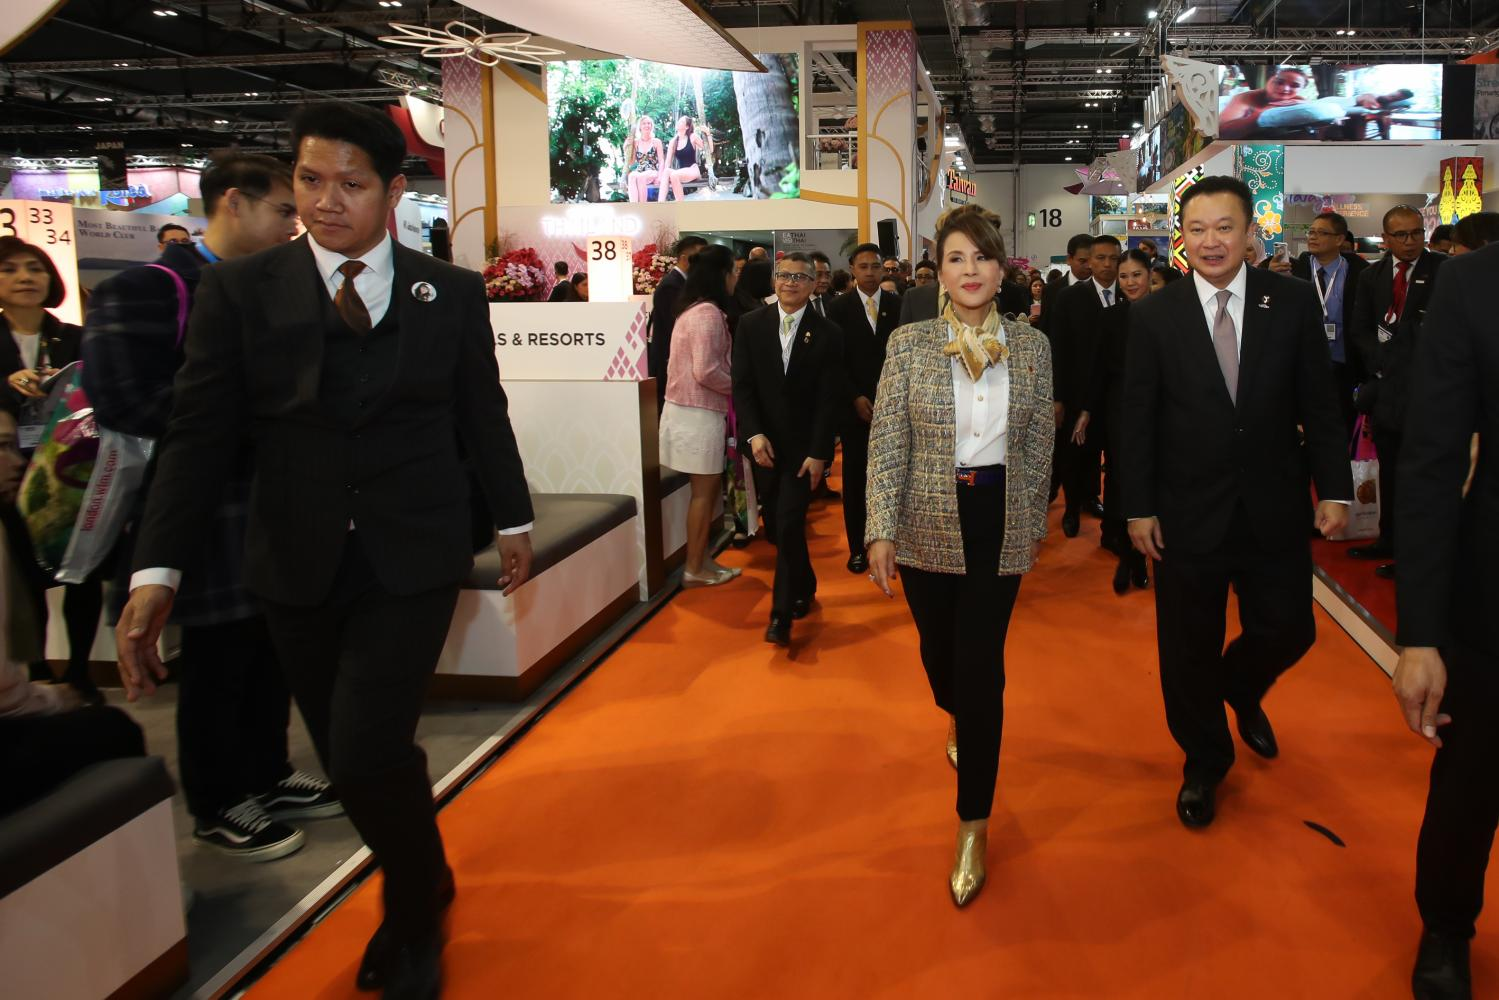 Princess Ubolratana visits the Thailand pavilion at WTM 2019 in London.